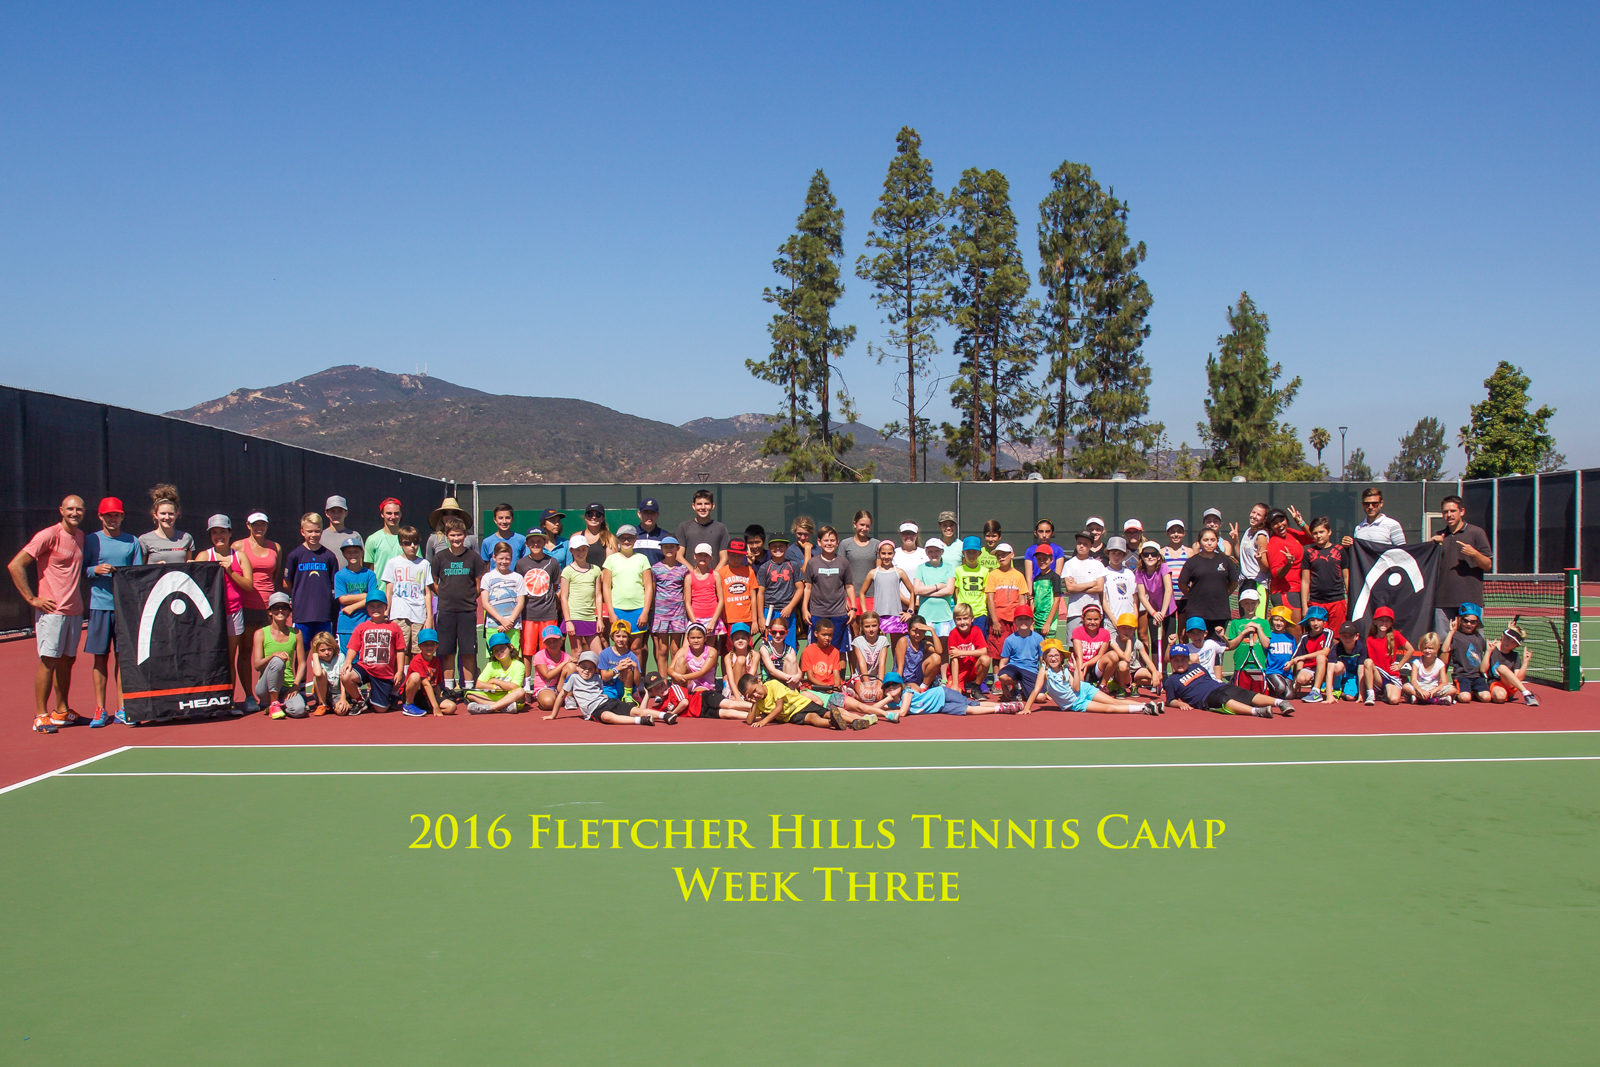 Sign Up For Tennis Camp Today!